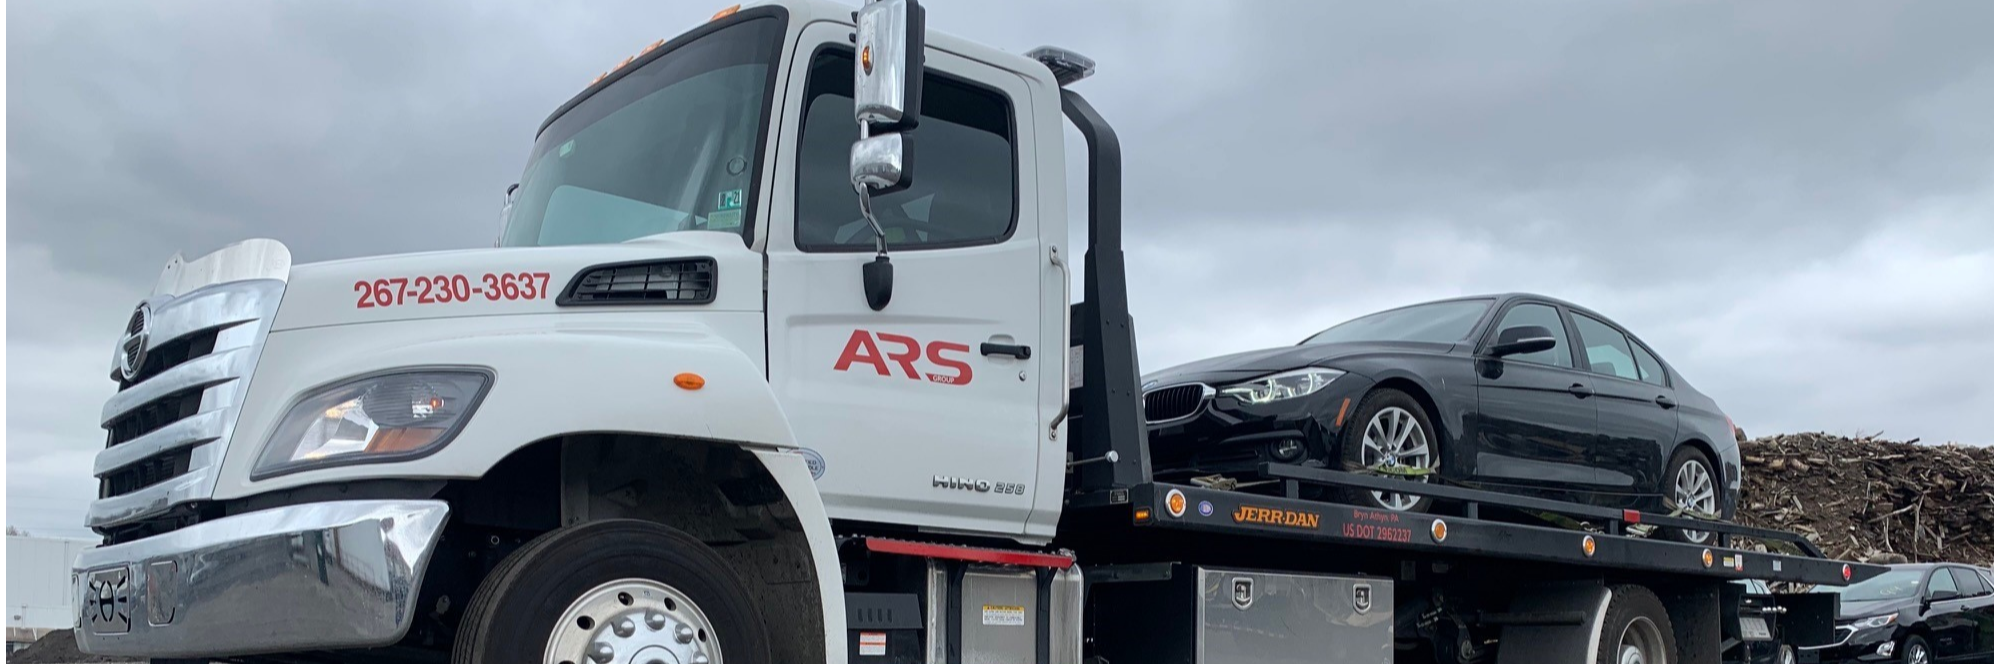 ARS Towing Towing.com Profile Banner